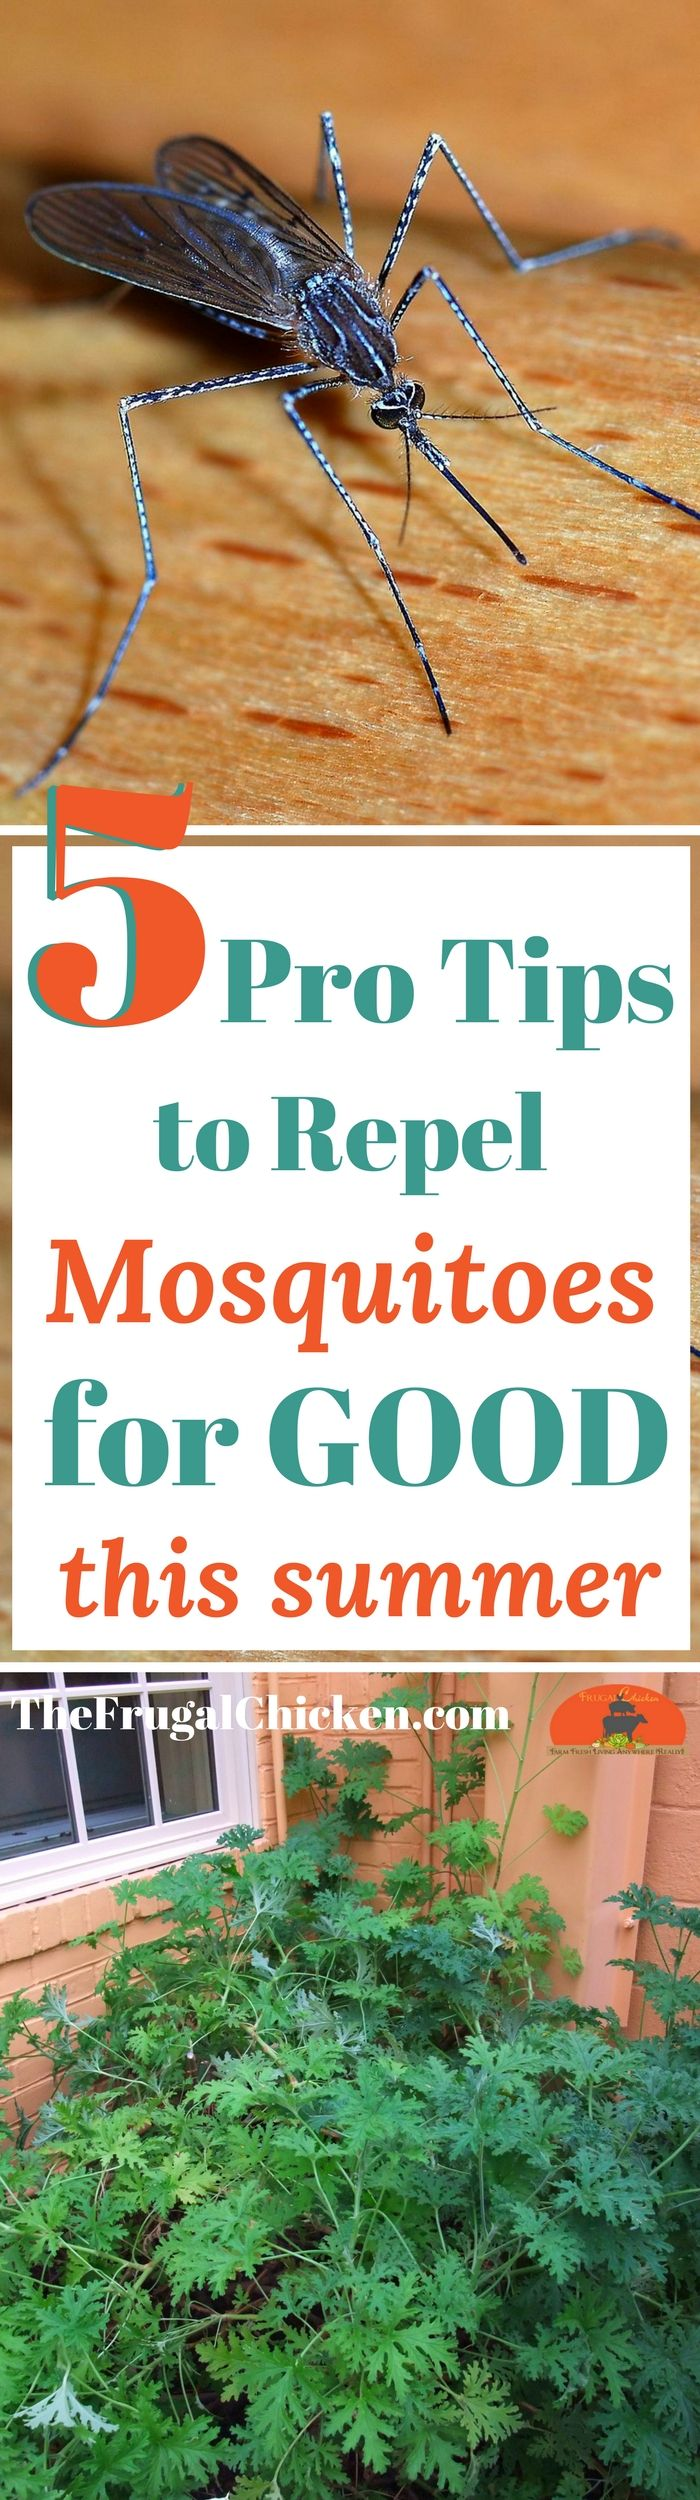 Summer is here....and so are mosquitoes! Here's the best pro tips to keep the little buggers at bay...for good!